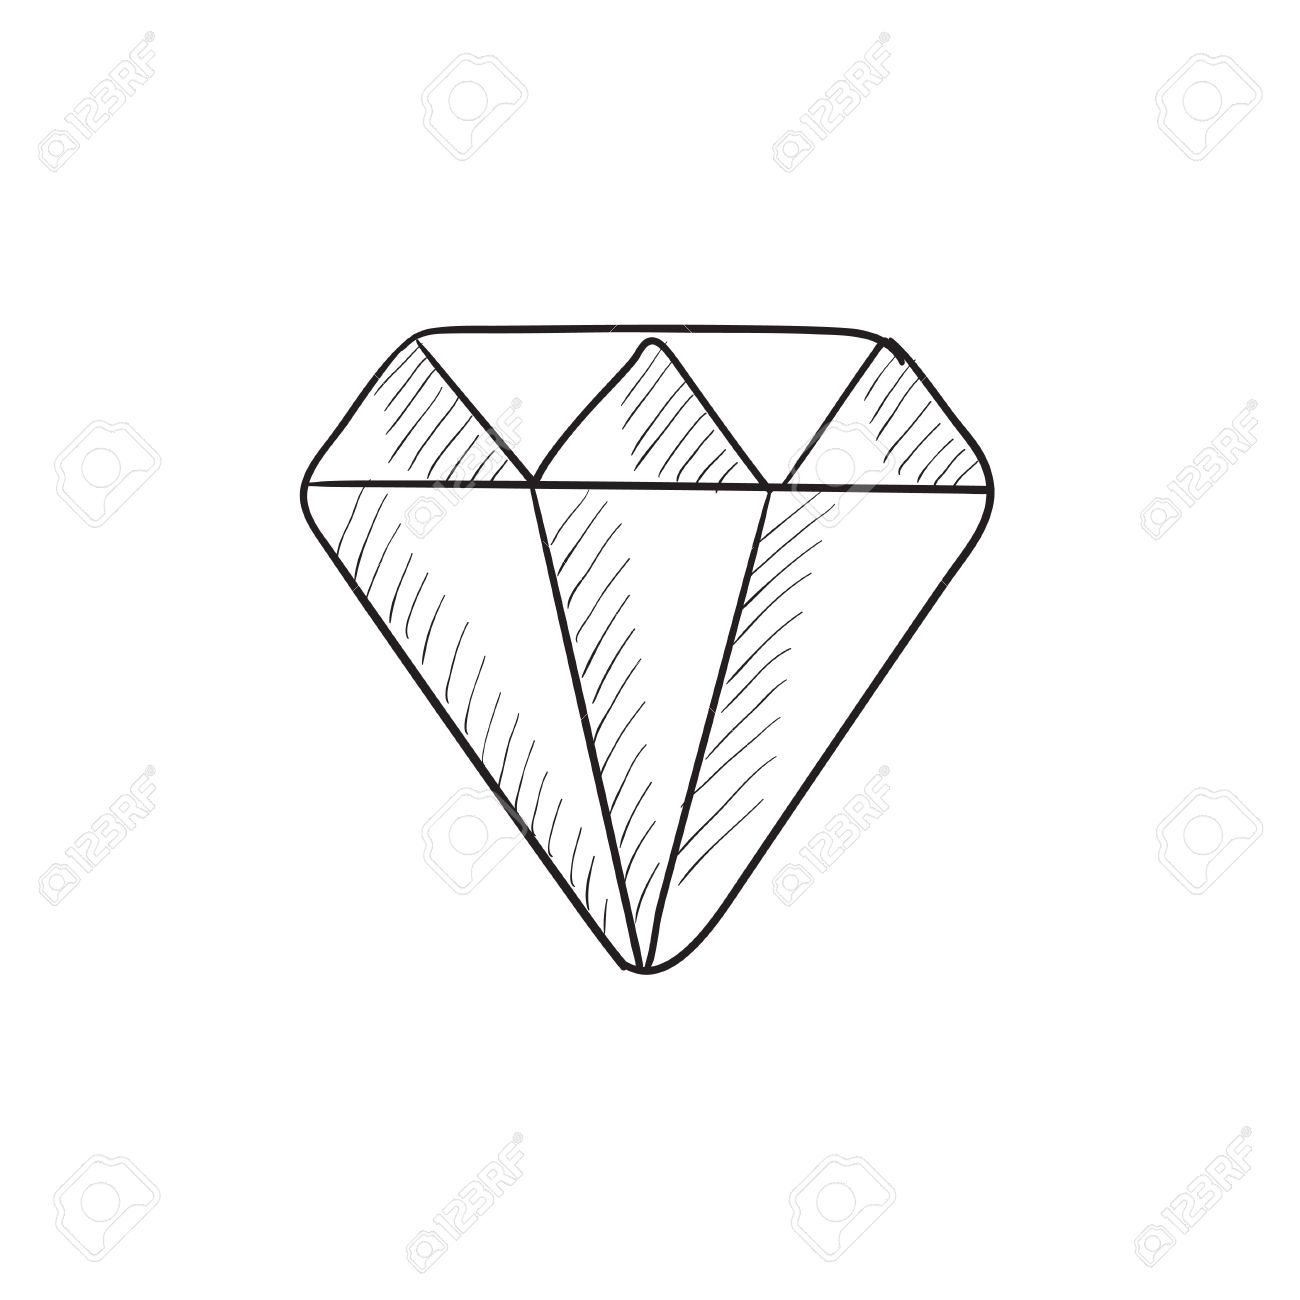 diamond vector sketch icon isolated on background hand drawn royalty free cliparts vectors and stock illustration image 57814301 diamond vector sketch icon isolated on background hand drawn